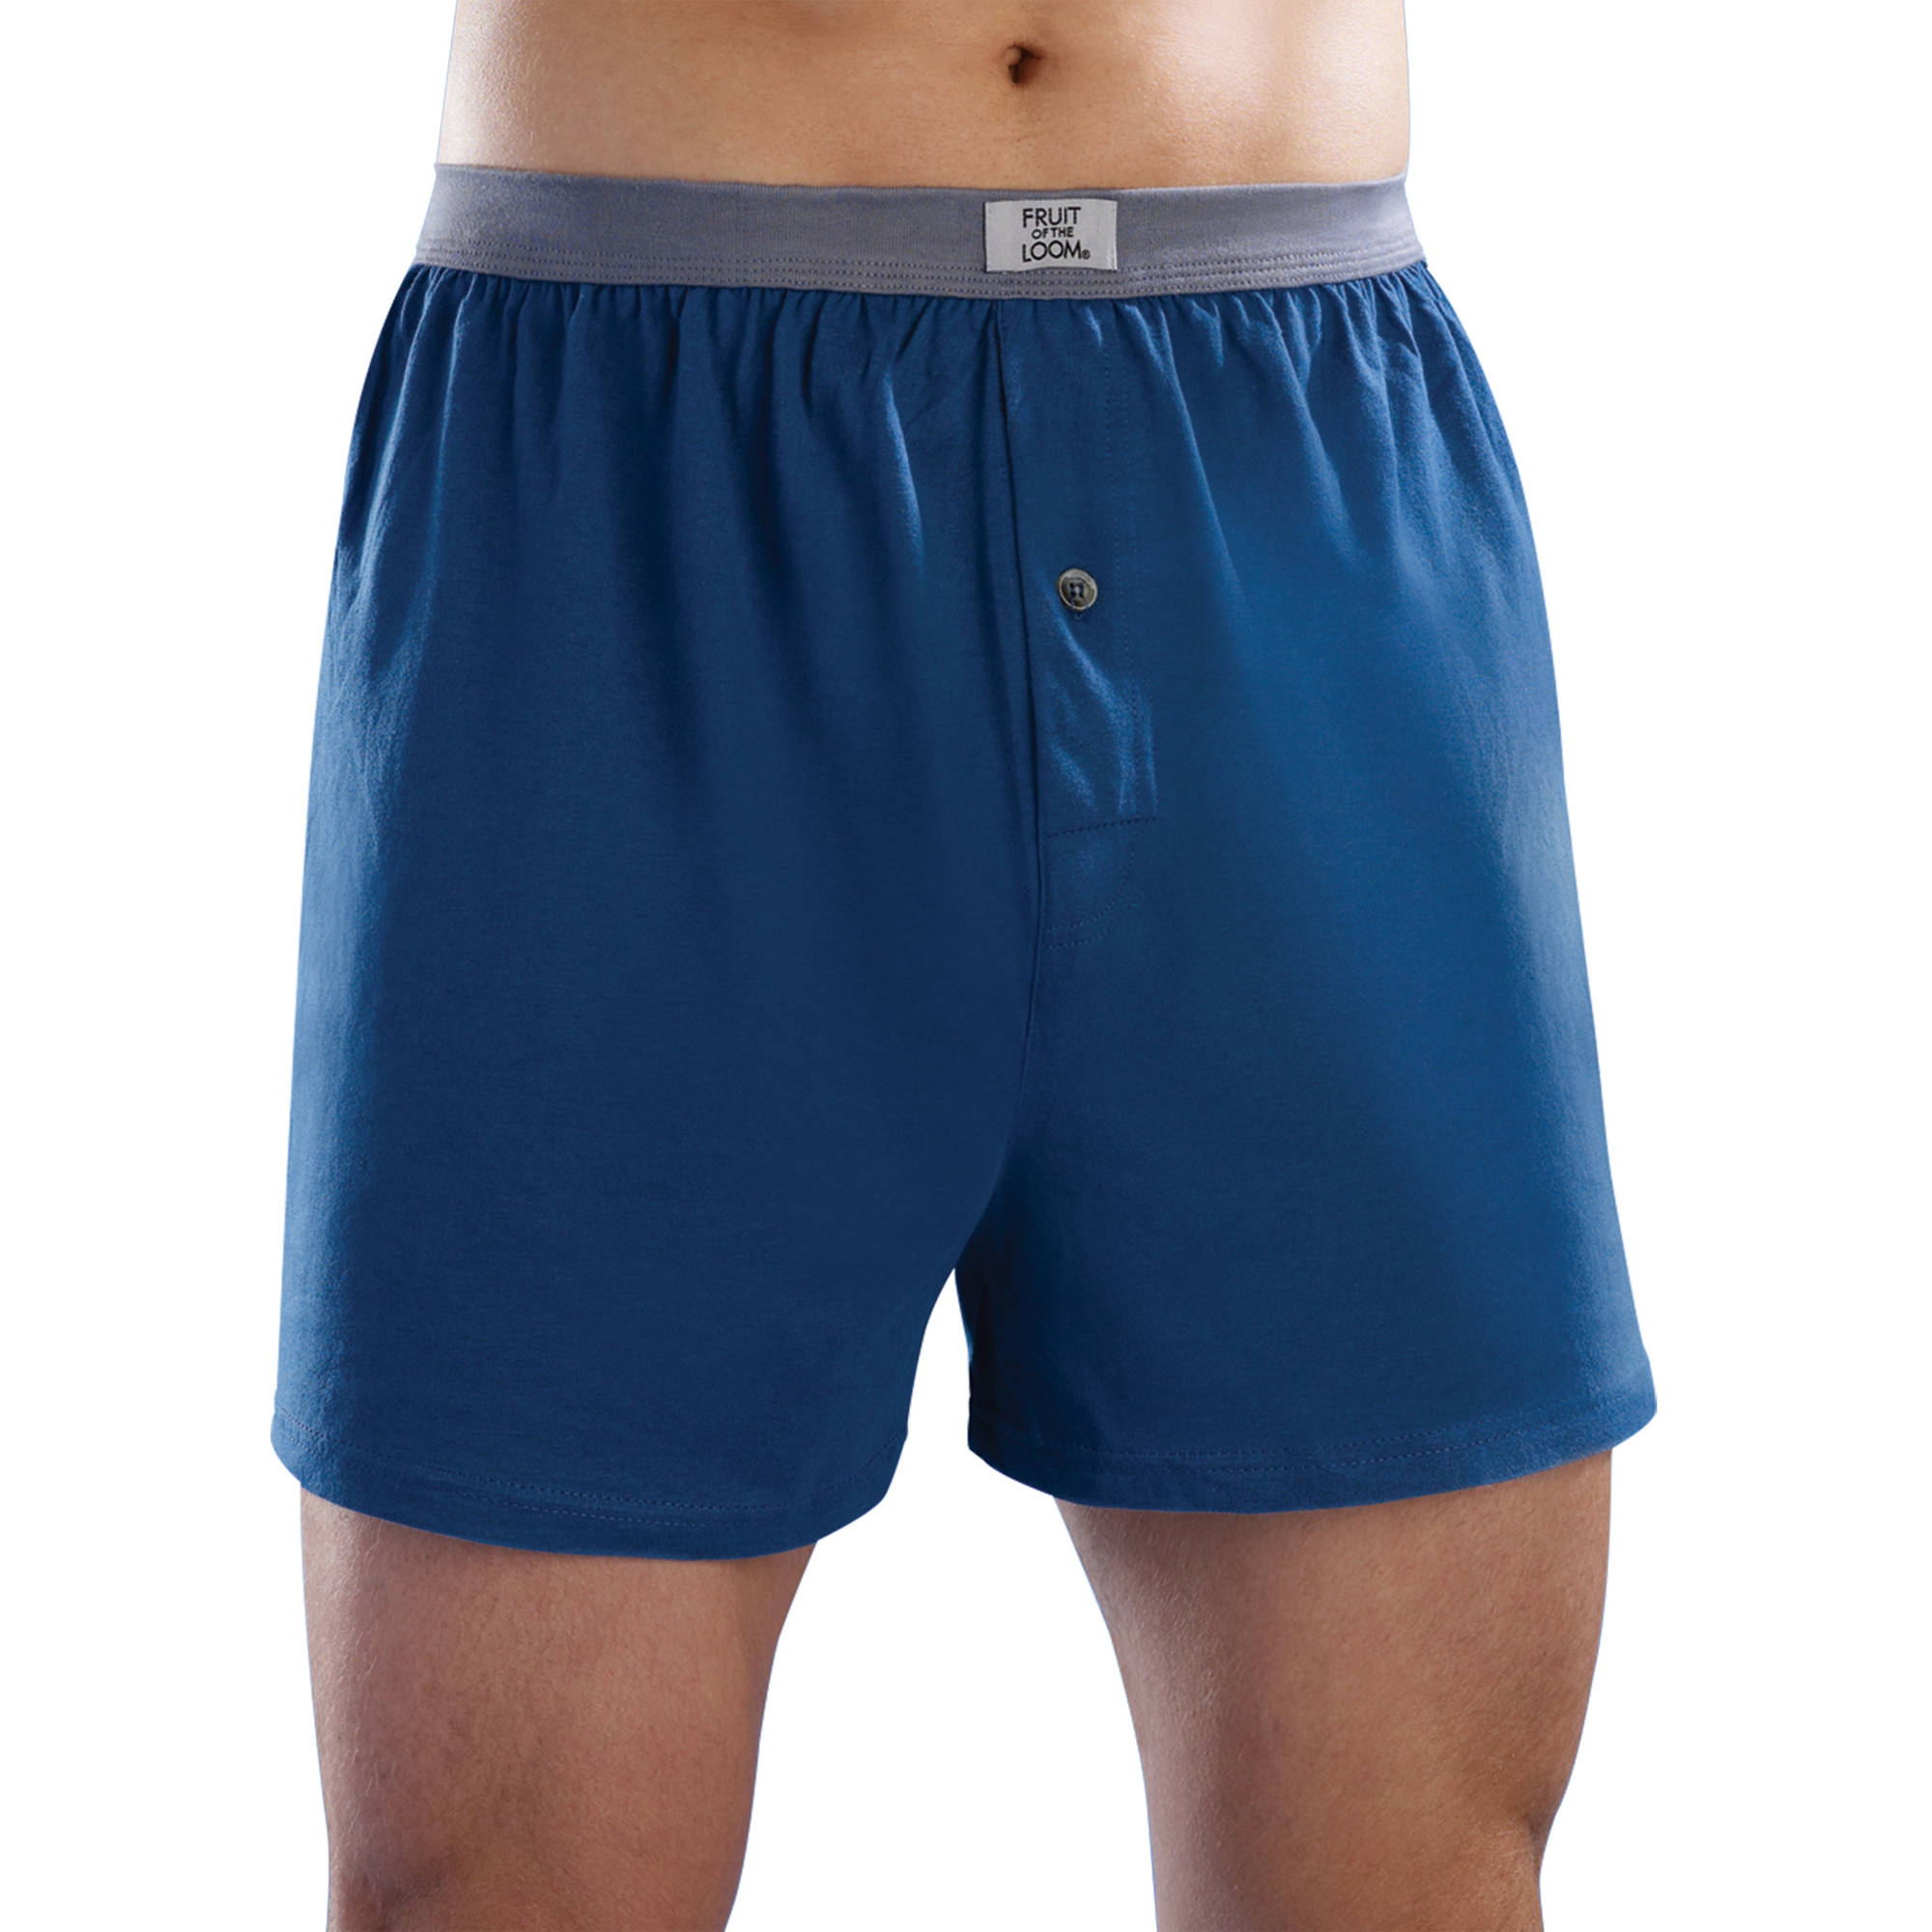 Fruit of the Loom Big Men's Assorted Color Knit Boxers, 5-Pack